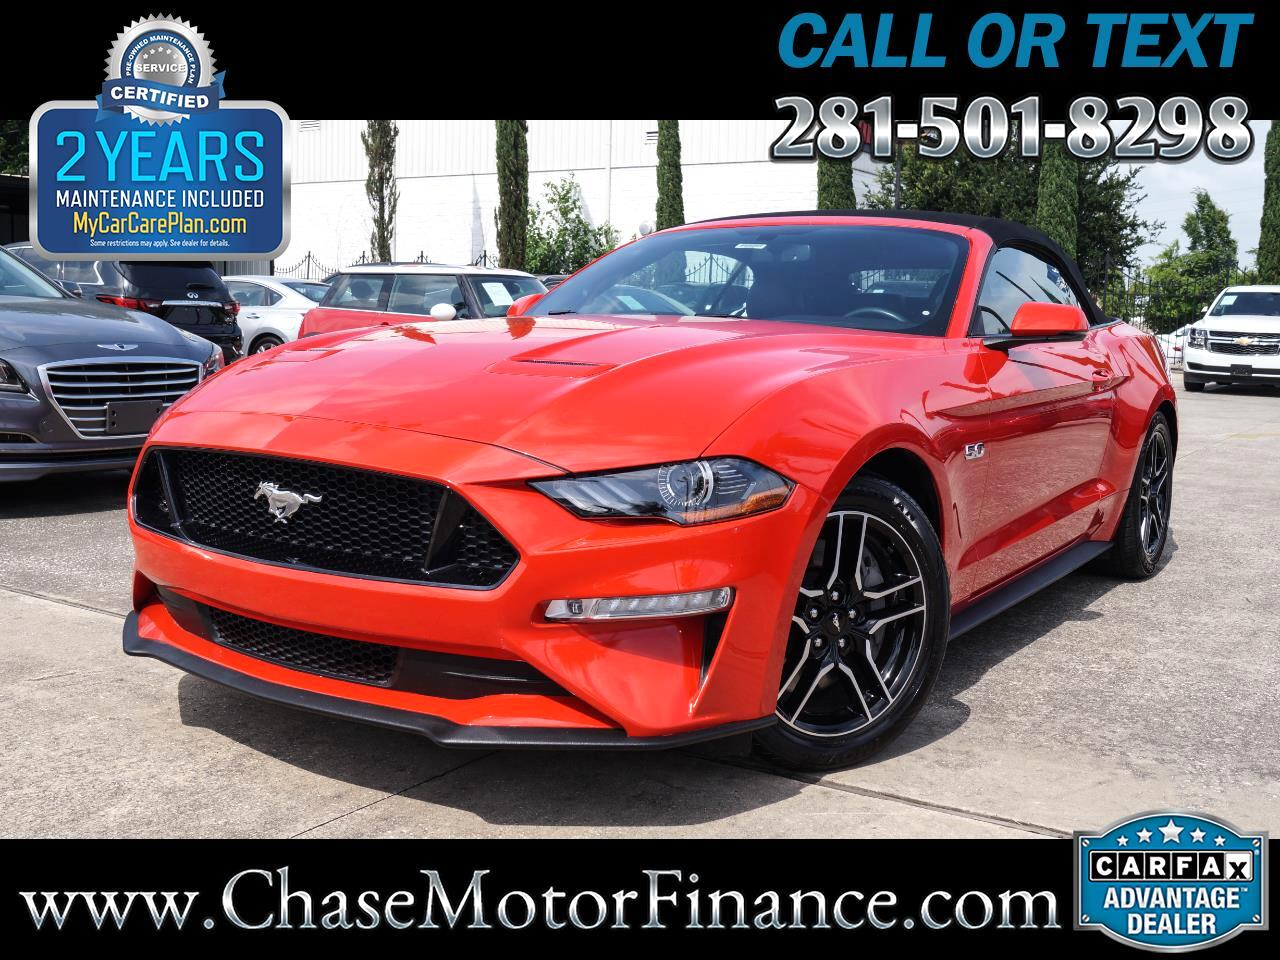 2018 Ford Mustang 2dr Convertible GT